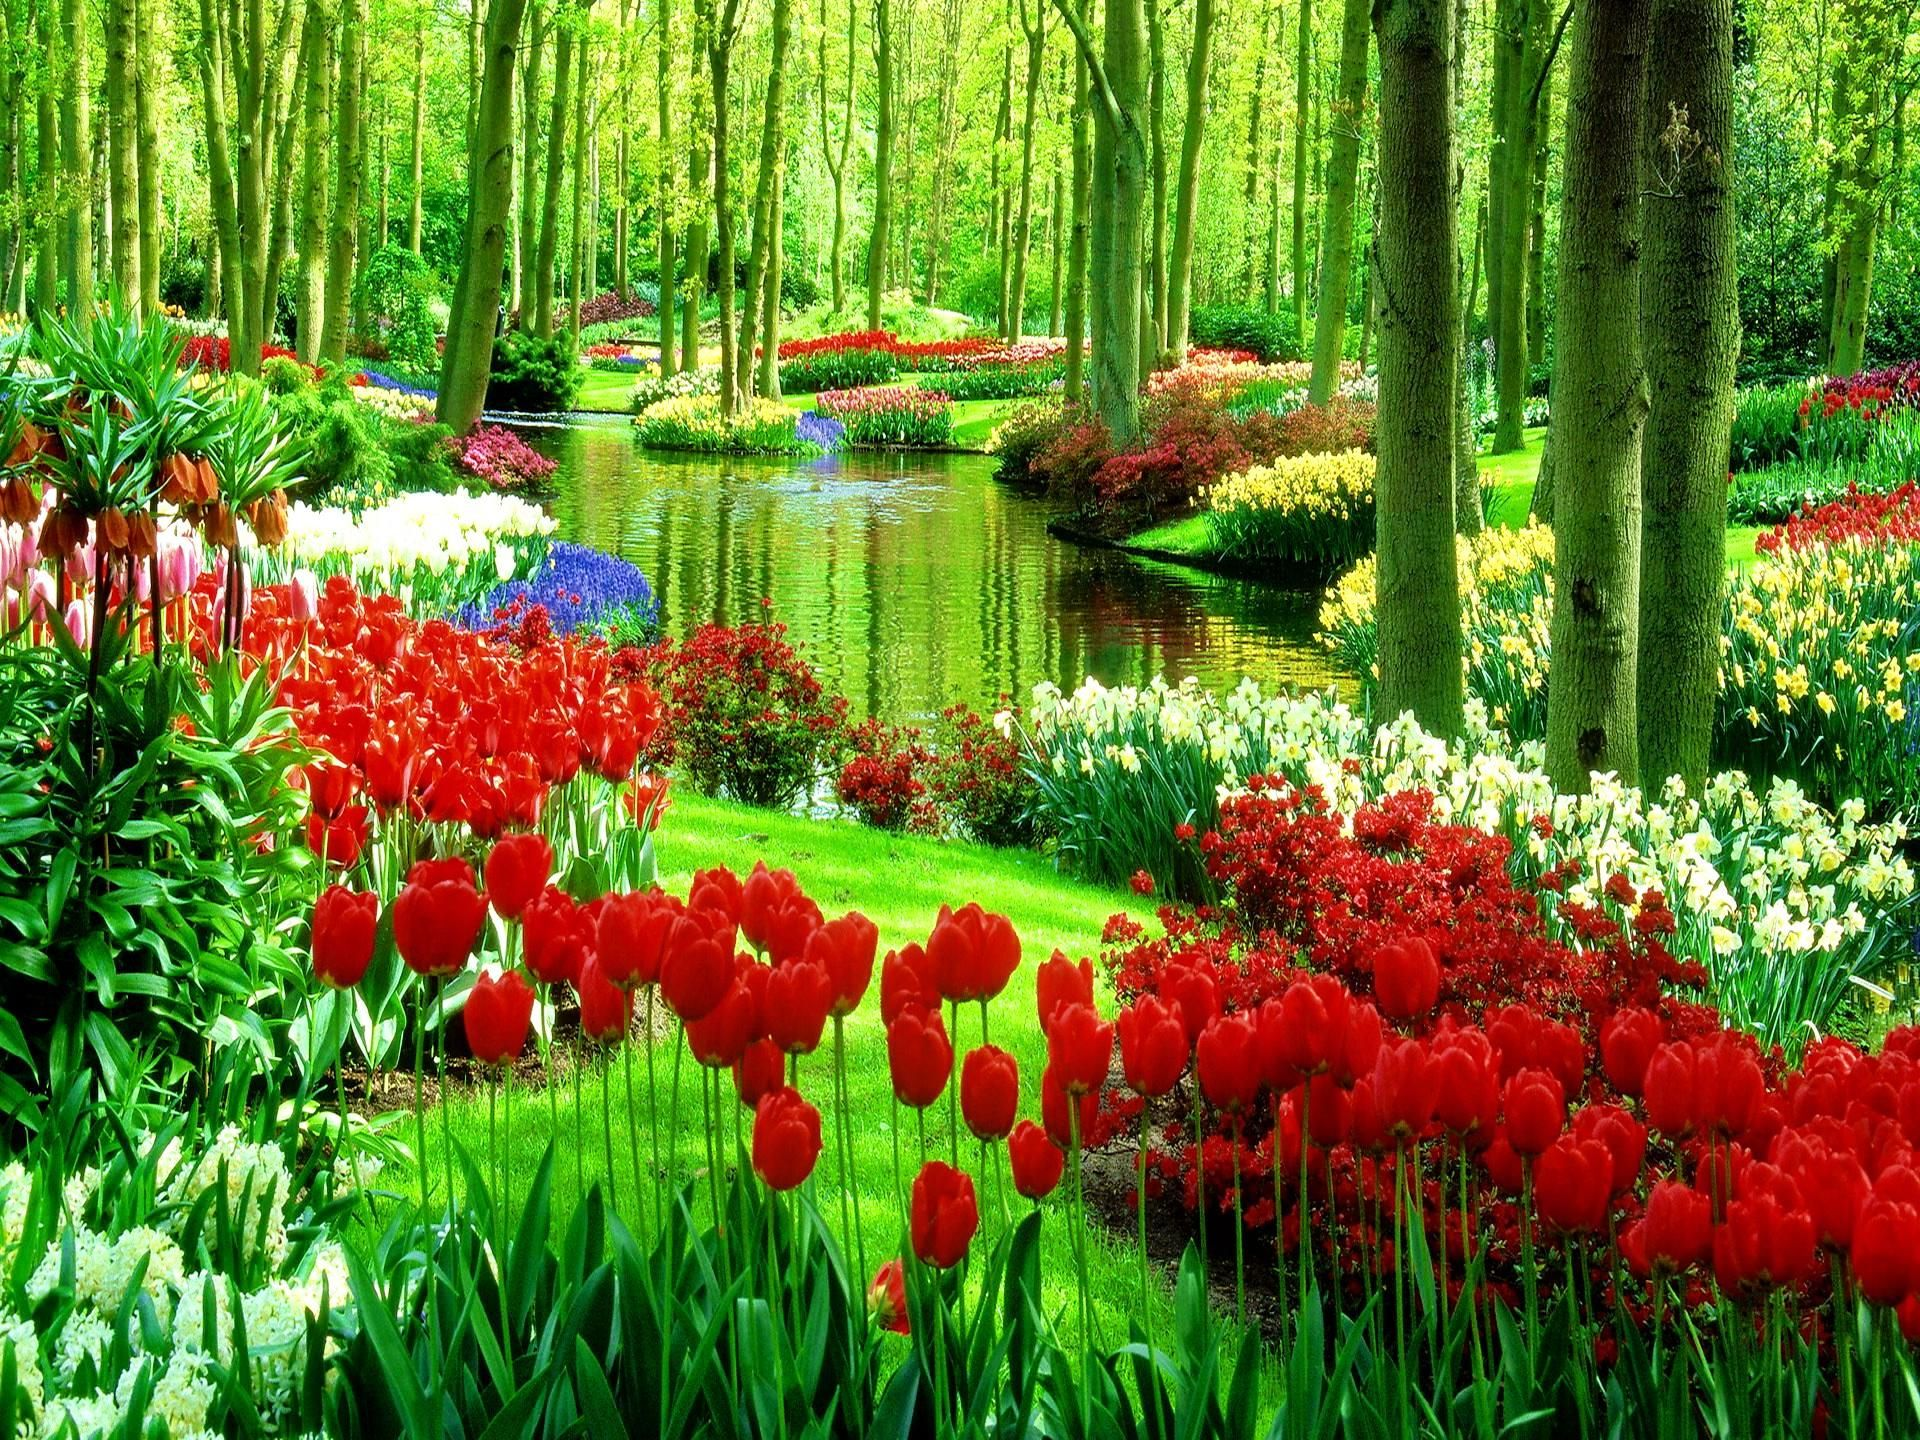 Hd wallpaper park - Green Park With Flowers Nature Full Hd Wallpaper